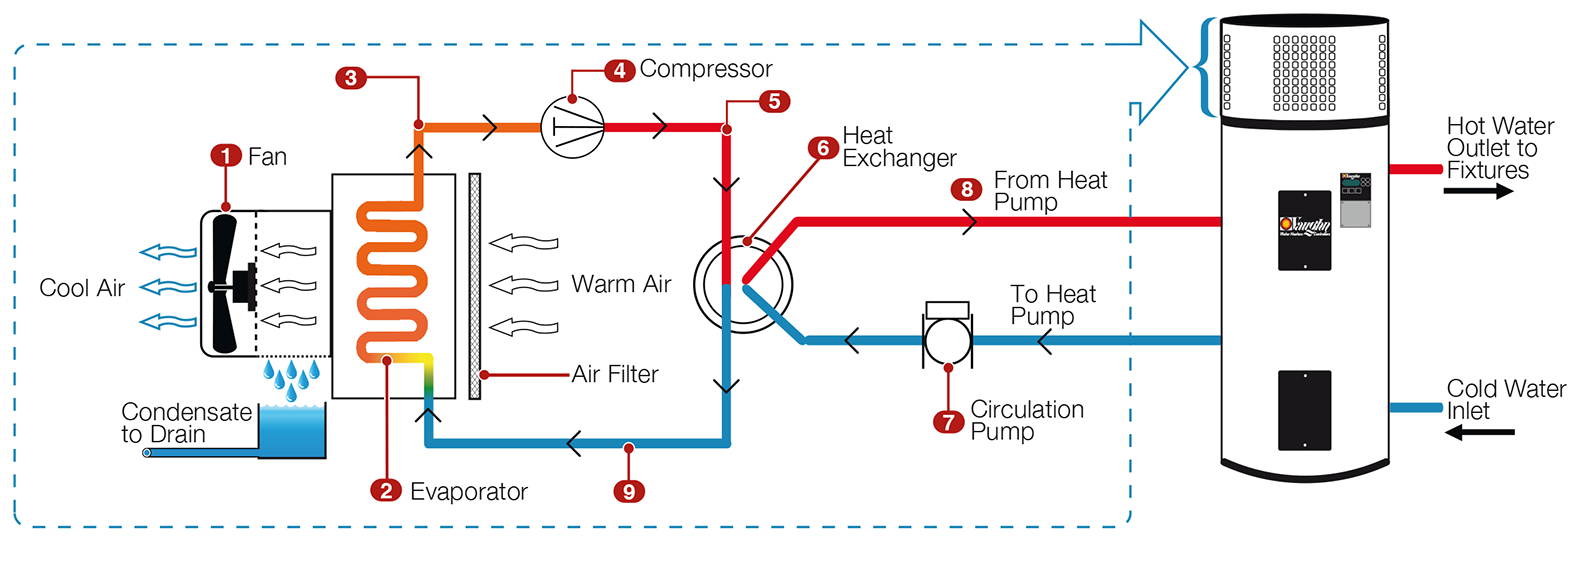 High Efficiency Electric Water Heater - Vaughn - Electric Hot Water Heater Wiring Diagram